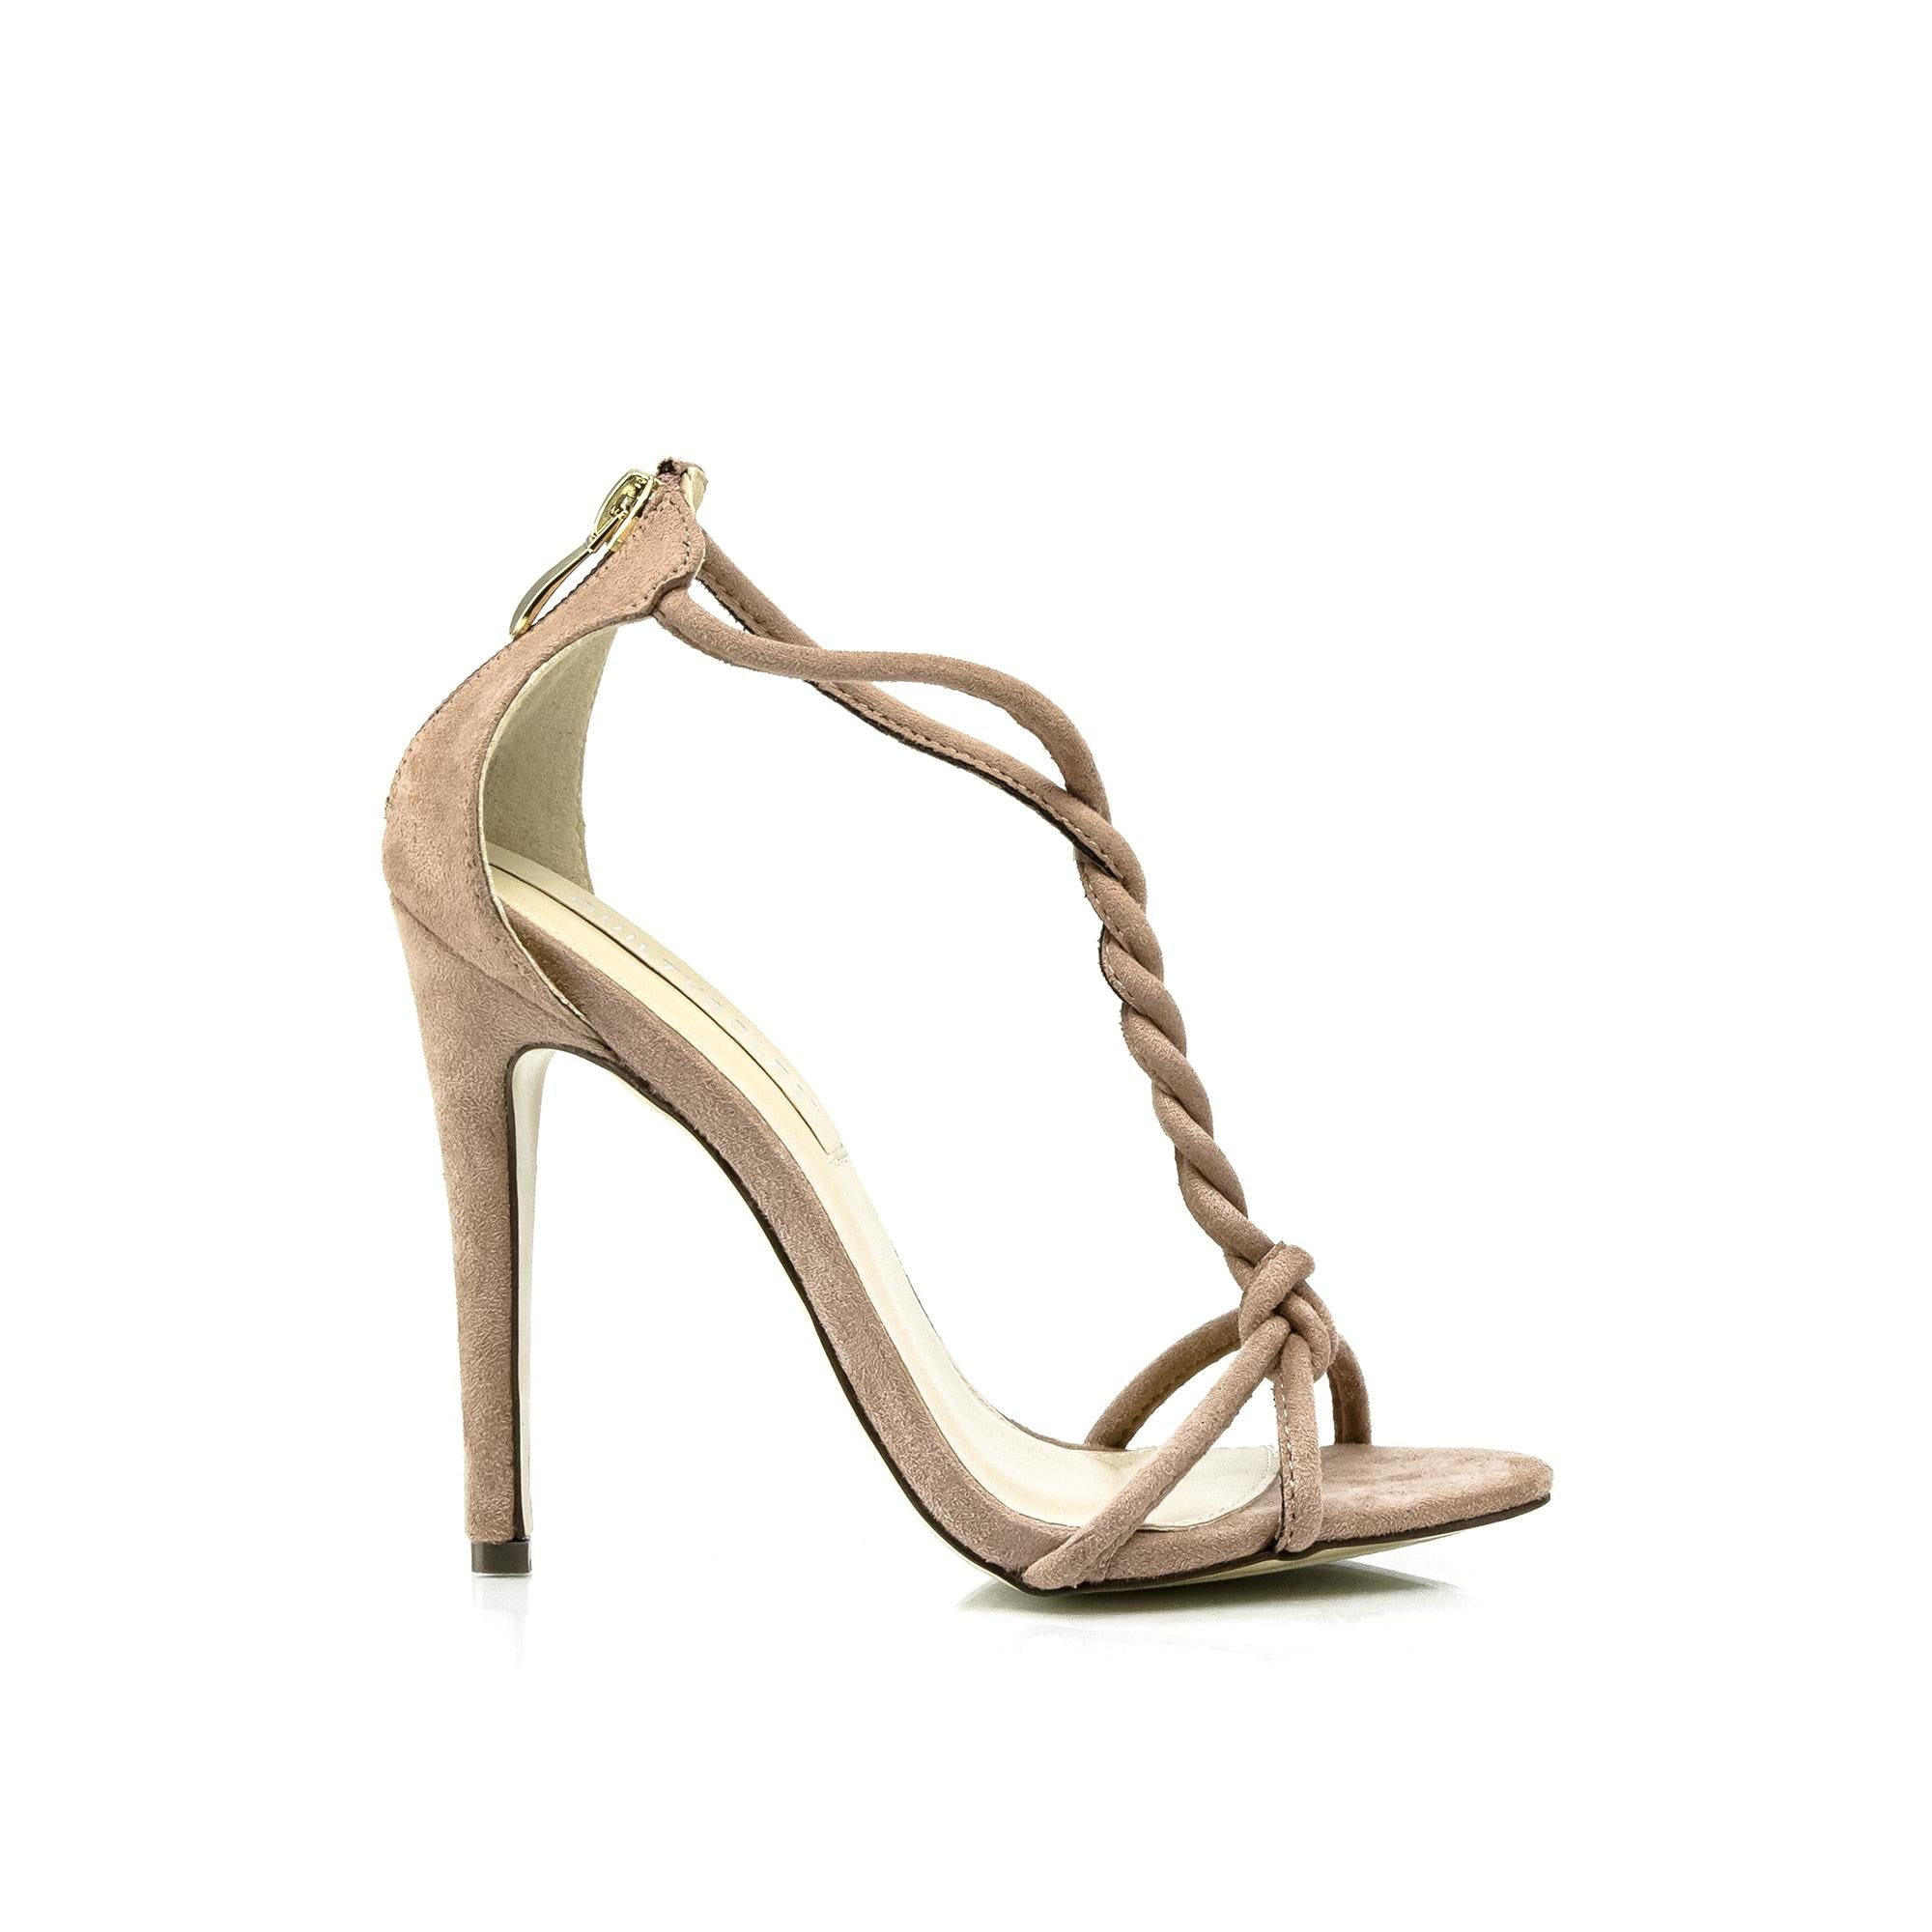 PEYTON Strappy High Heel Sandals